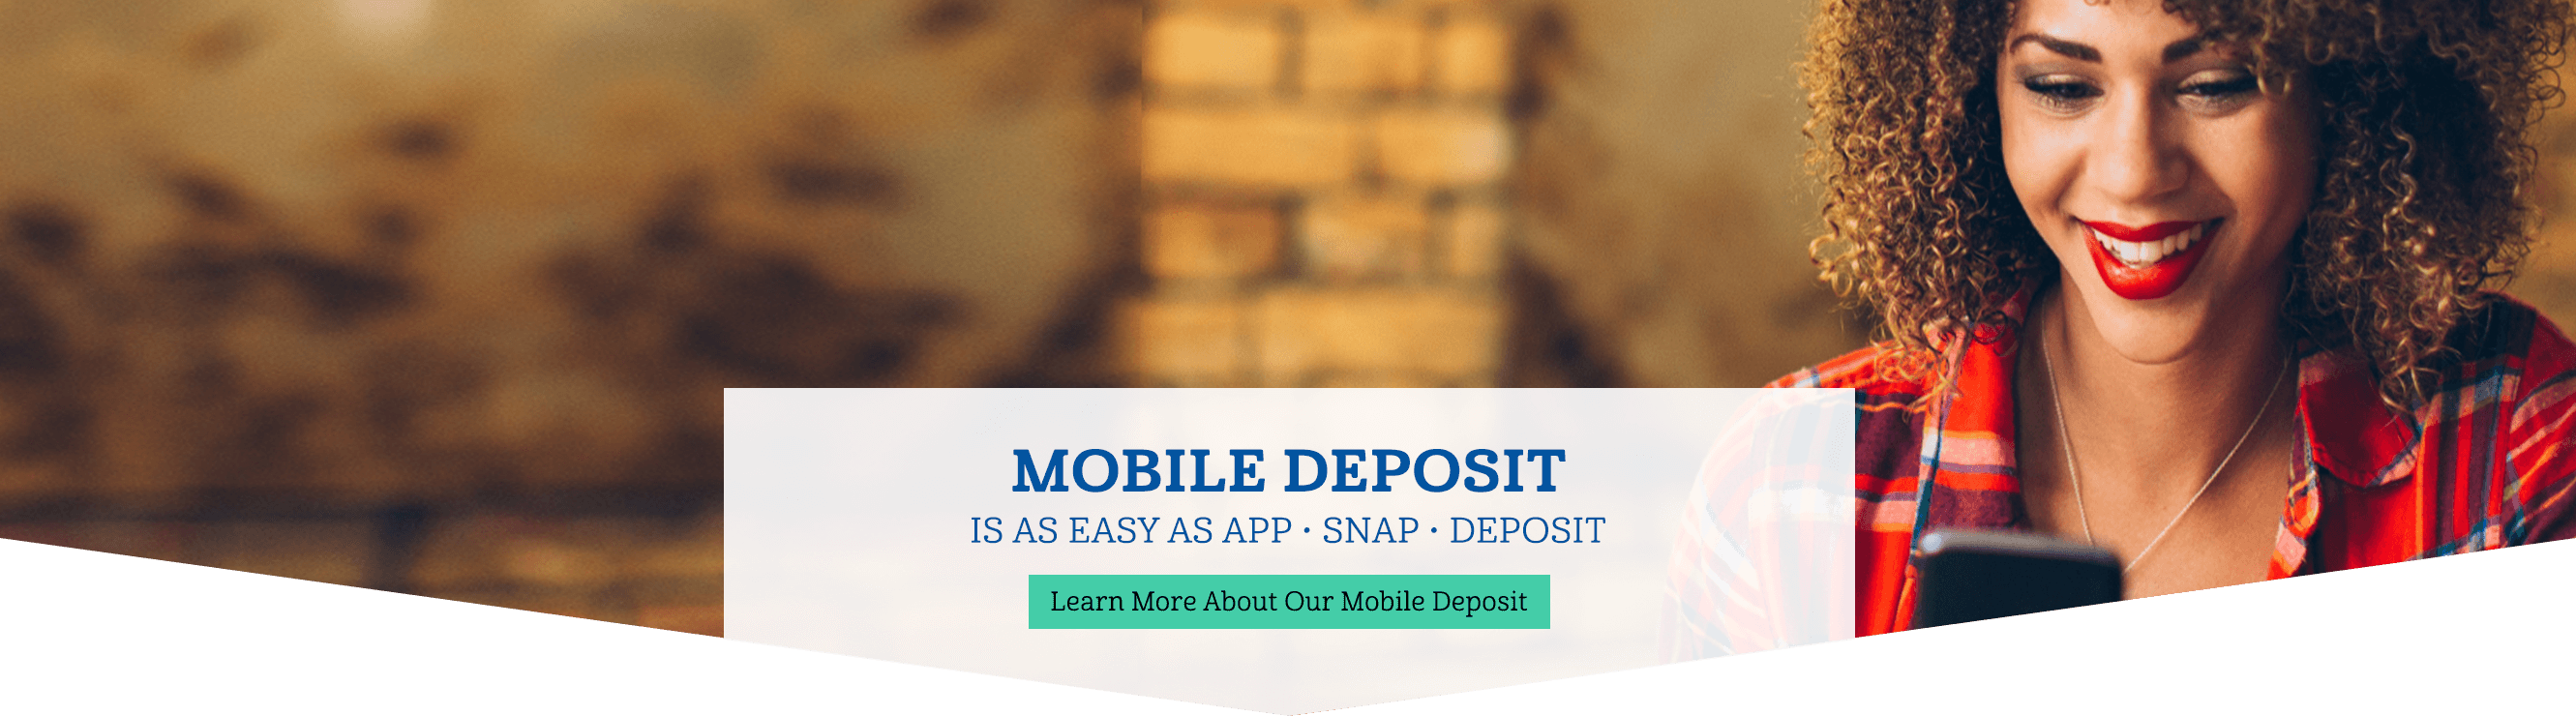 Mobile Deposit is as easy as app, snap, deposit. Learn more about our mobile deposit